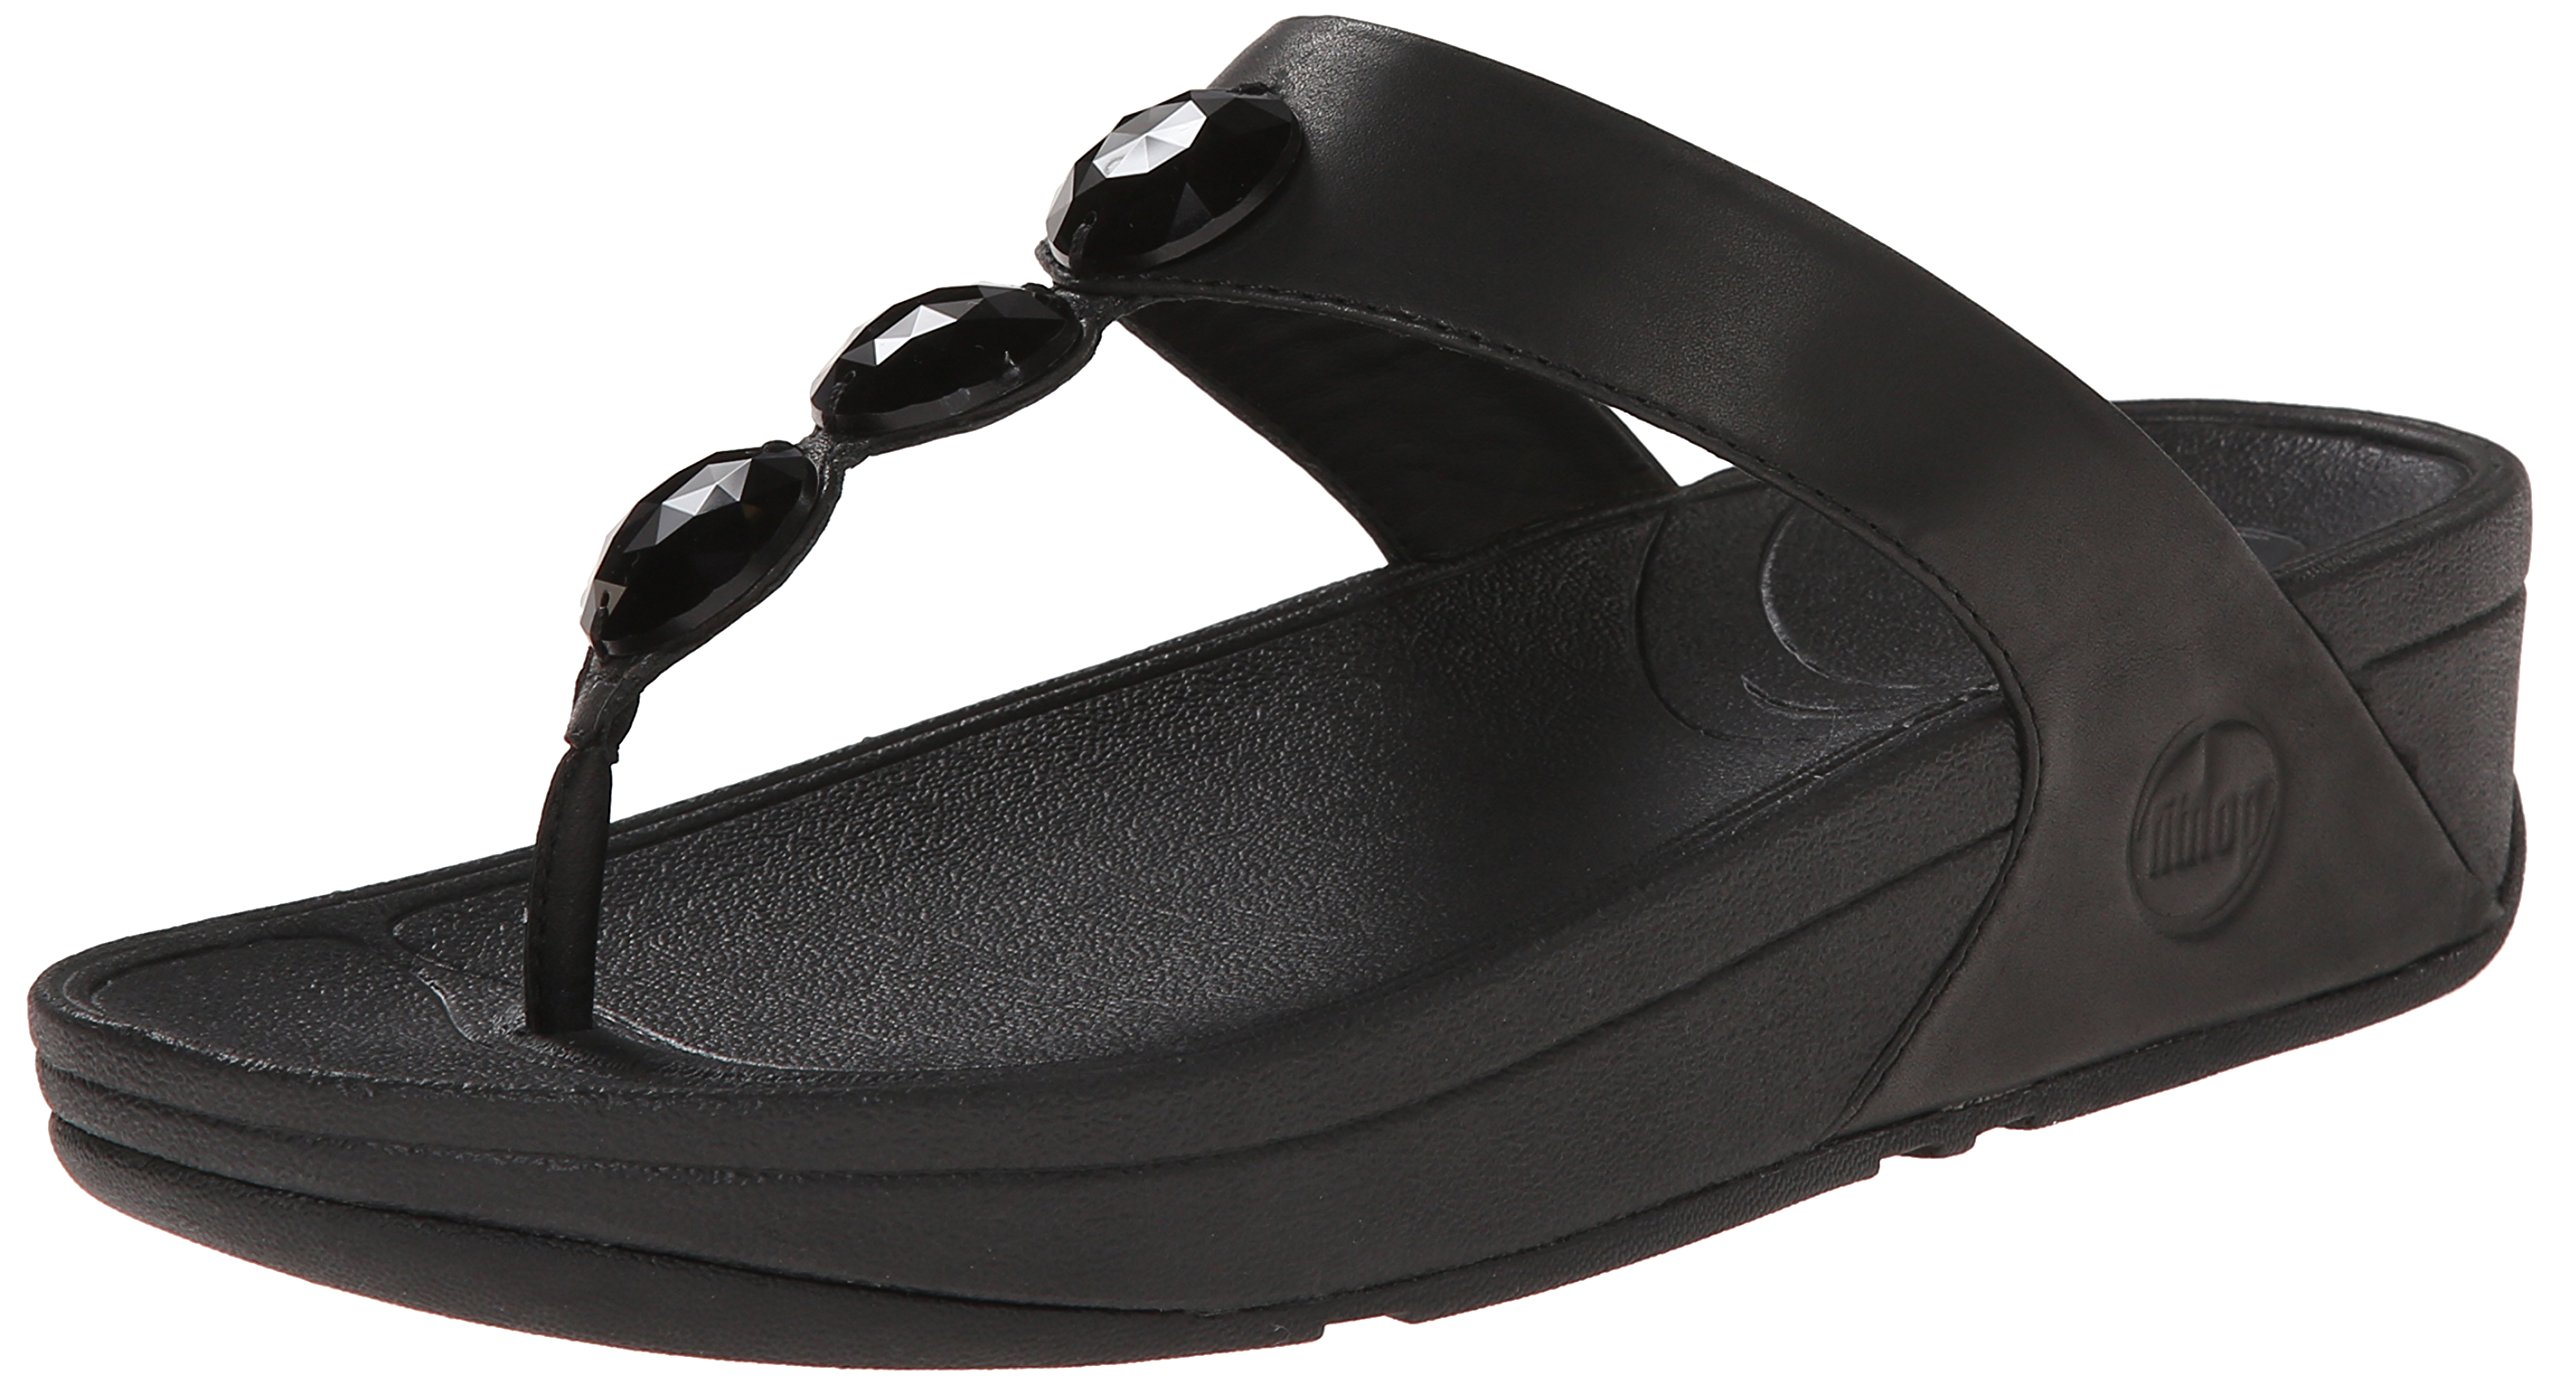 FitFlop Women's Petra Leather Flip Flop, All Black, 5 M US by FitFlop